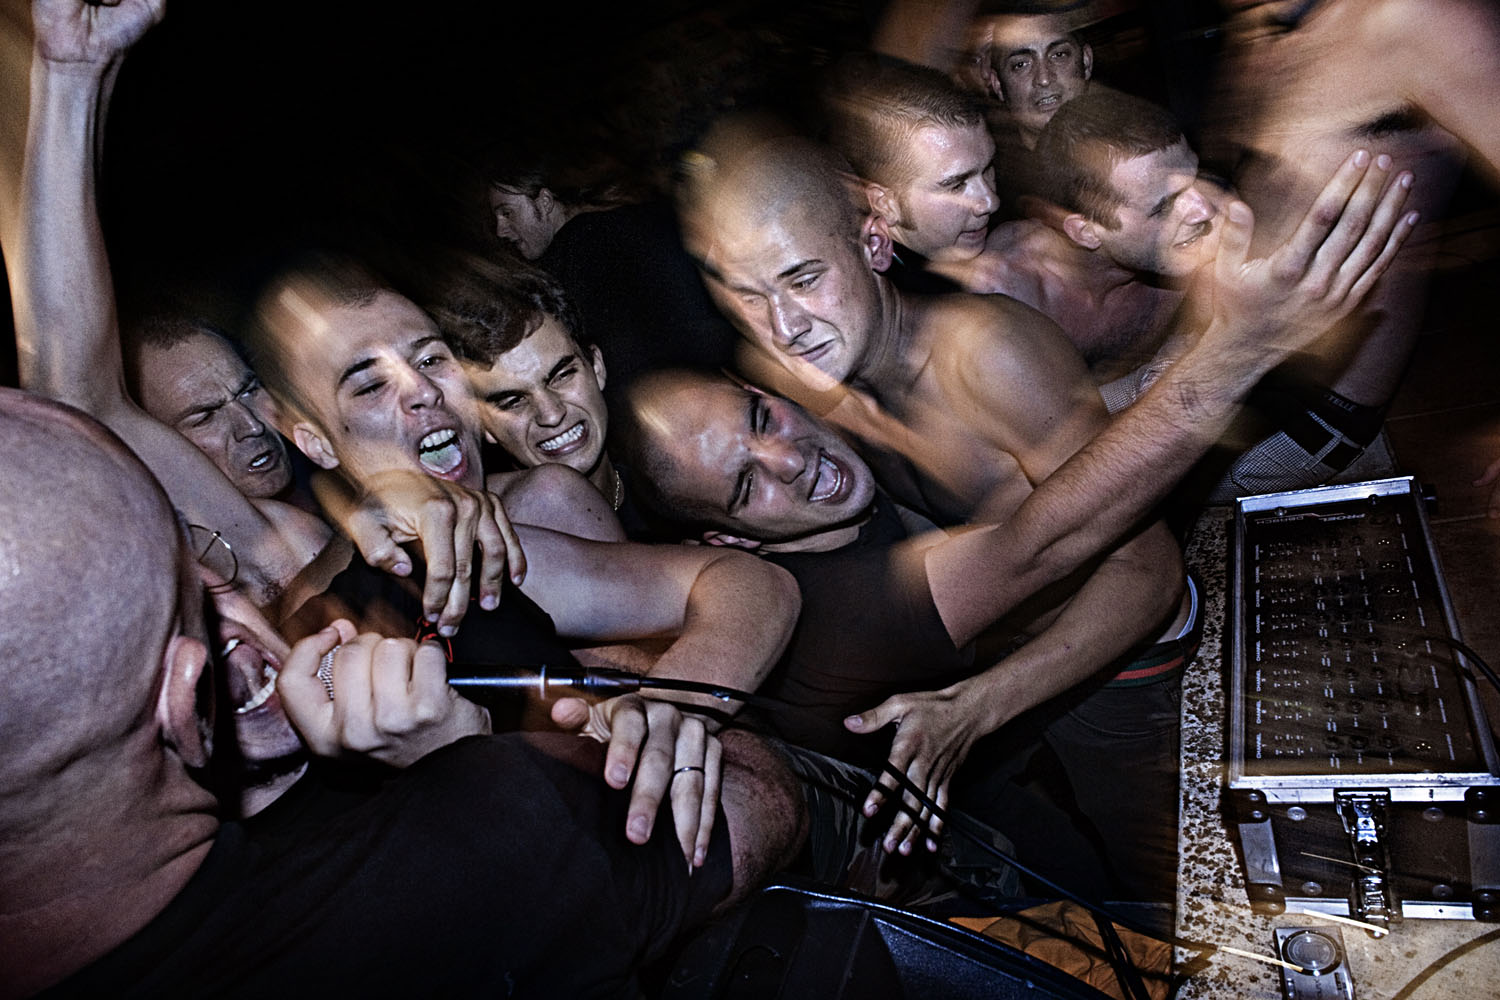 Dancing and fighting during a Nazi-rock concert in Naples, July 2009